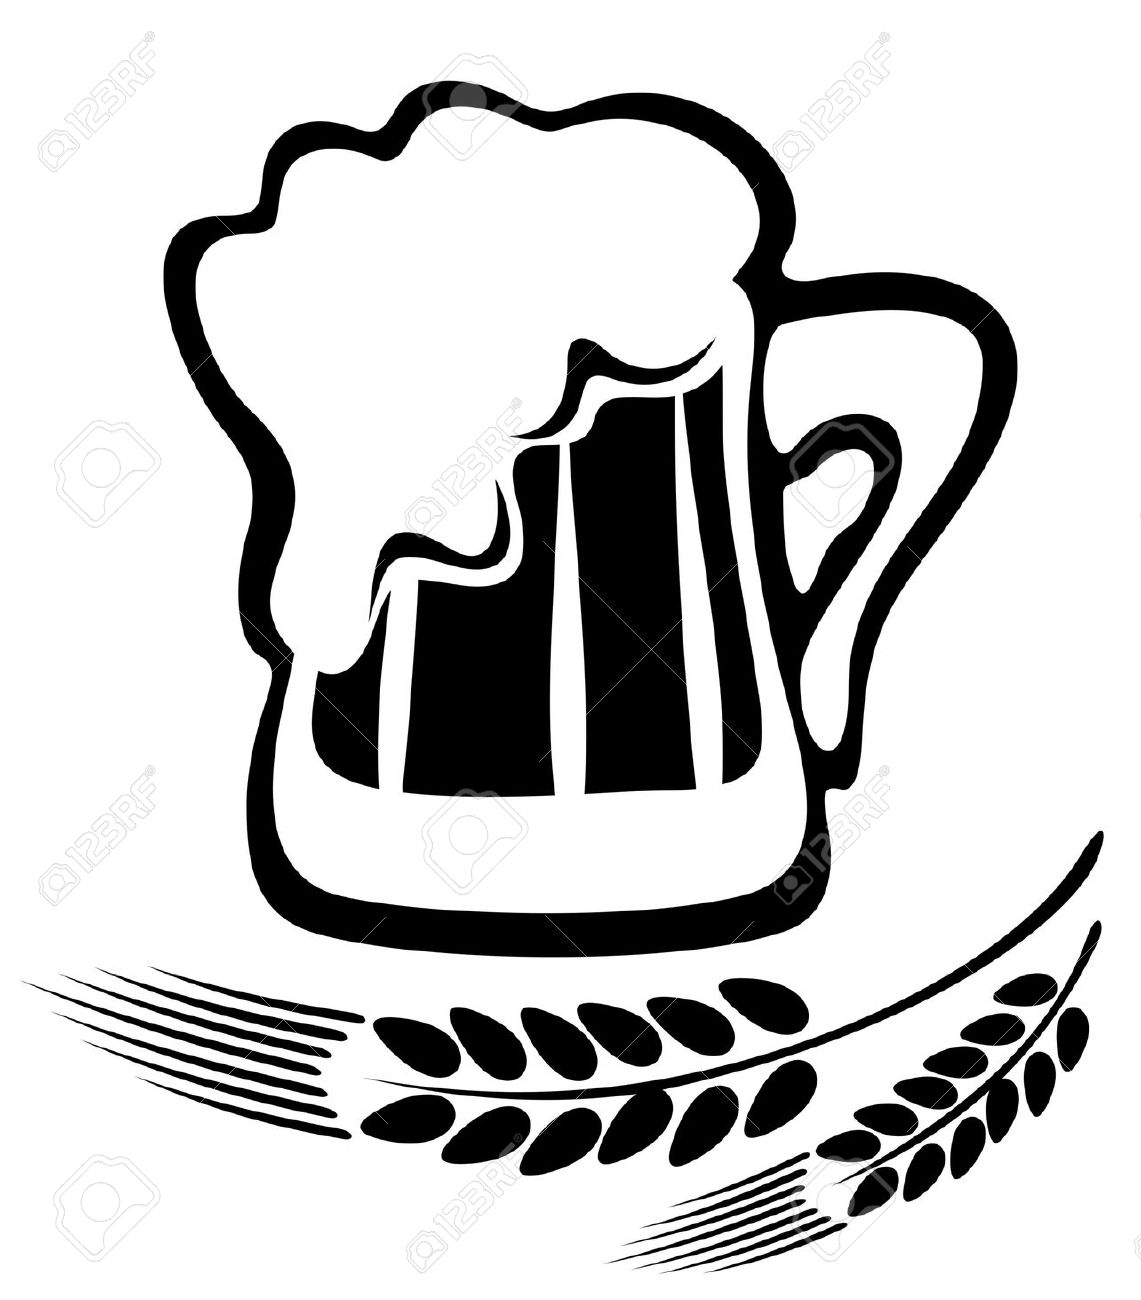 1141x1300 Beer Mugs Clipart Black And White Images Brews Amp Brushes